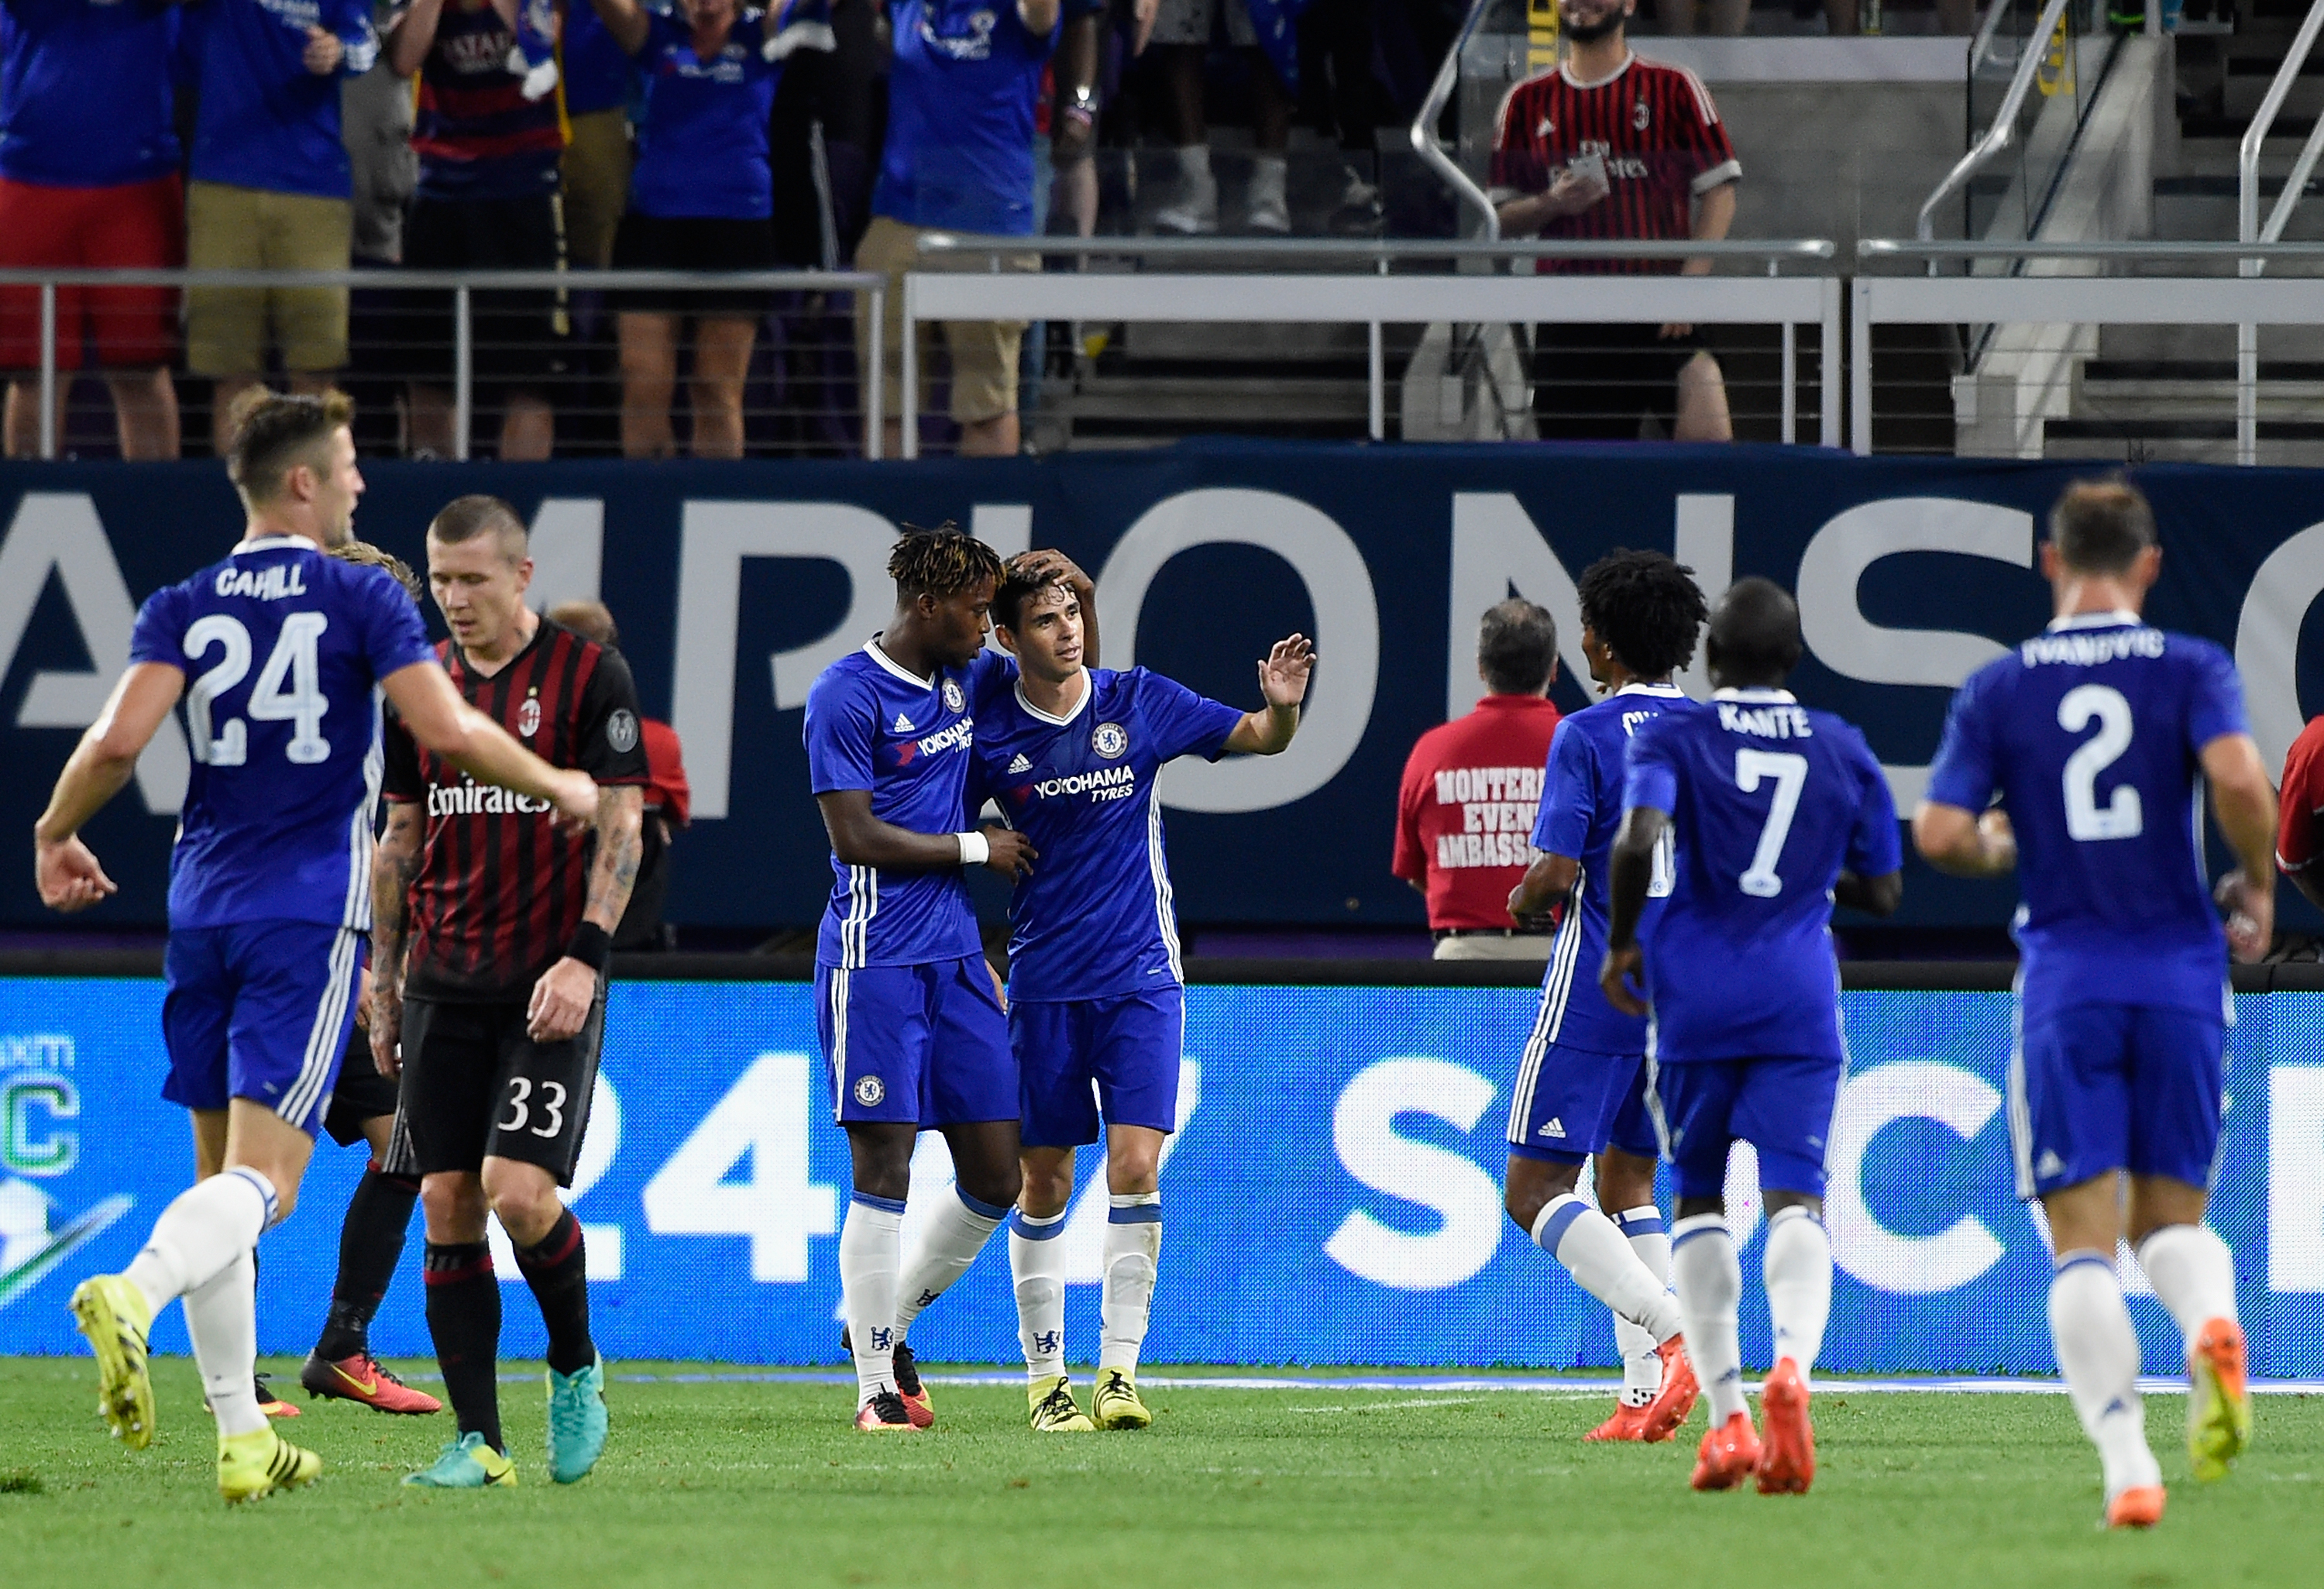 MINNEAPOLIS, MN - AUGUST 3: Chelsea celebrates a goal by Oscar #8 as Juraj Kucka #33 of AC Milan looks on during the second half of the International Champions Cup match on August 3, 2016 at U.S. Bank Stadium in Minneapolis, Minnesota. Chelsea defeat AC Milan 3-1. (Photo by Hannah Foslien/Getty Images)